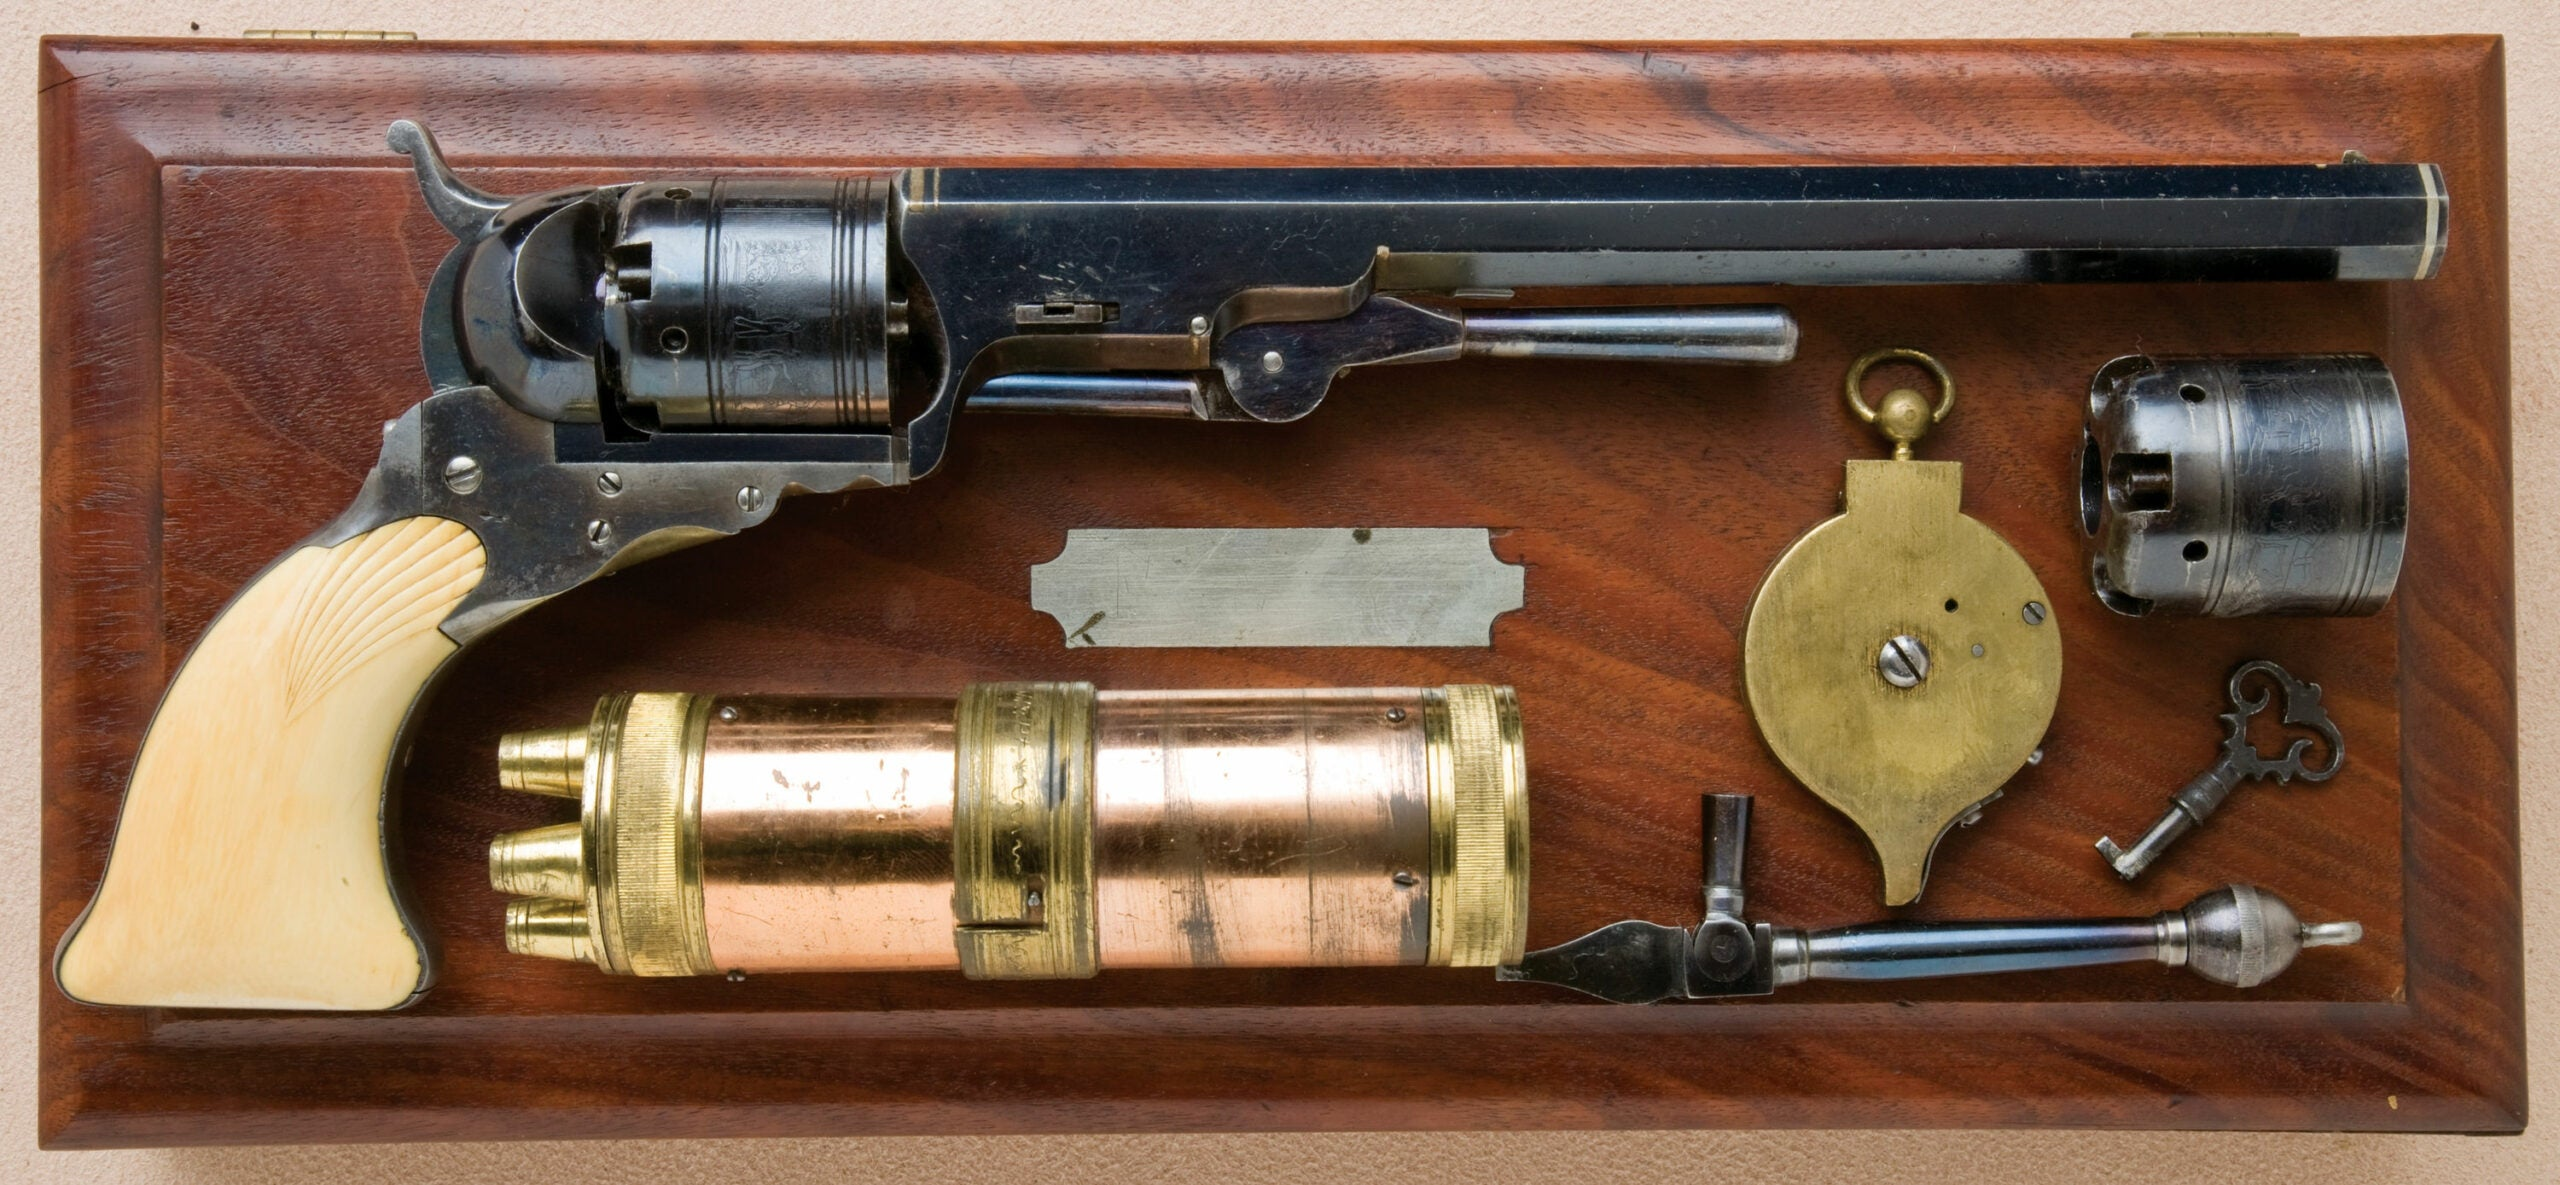 One of the Greatest Collections of Colt Revolvers Ever Assembled